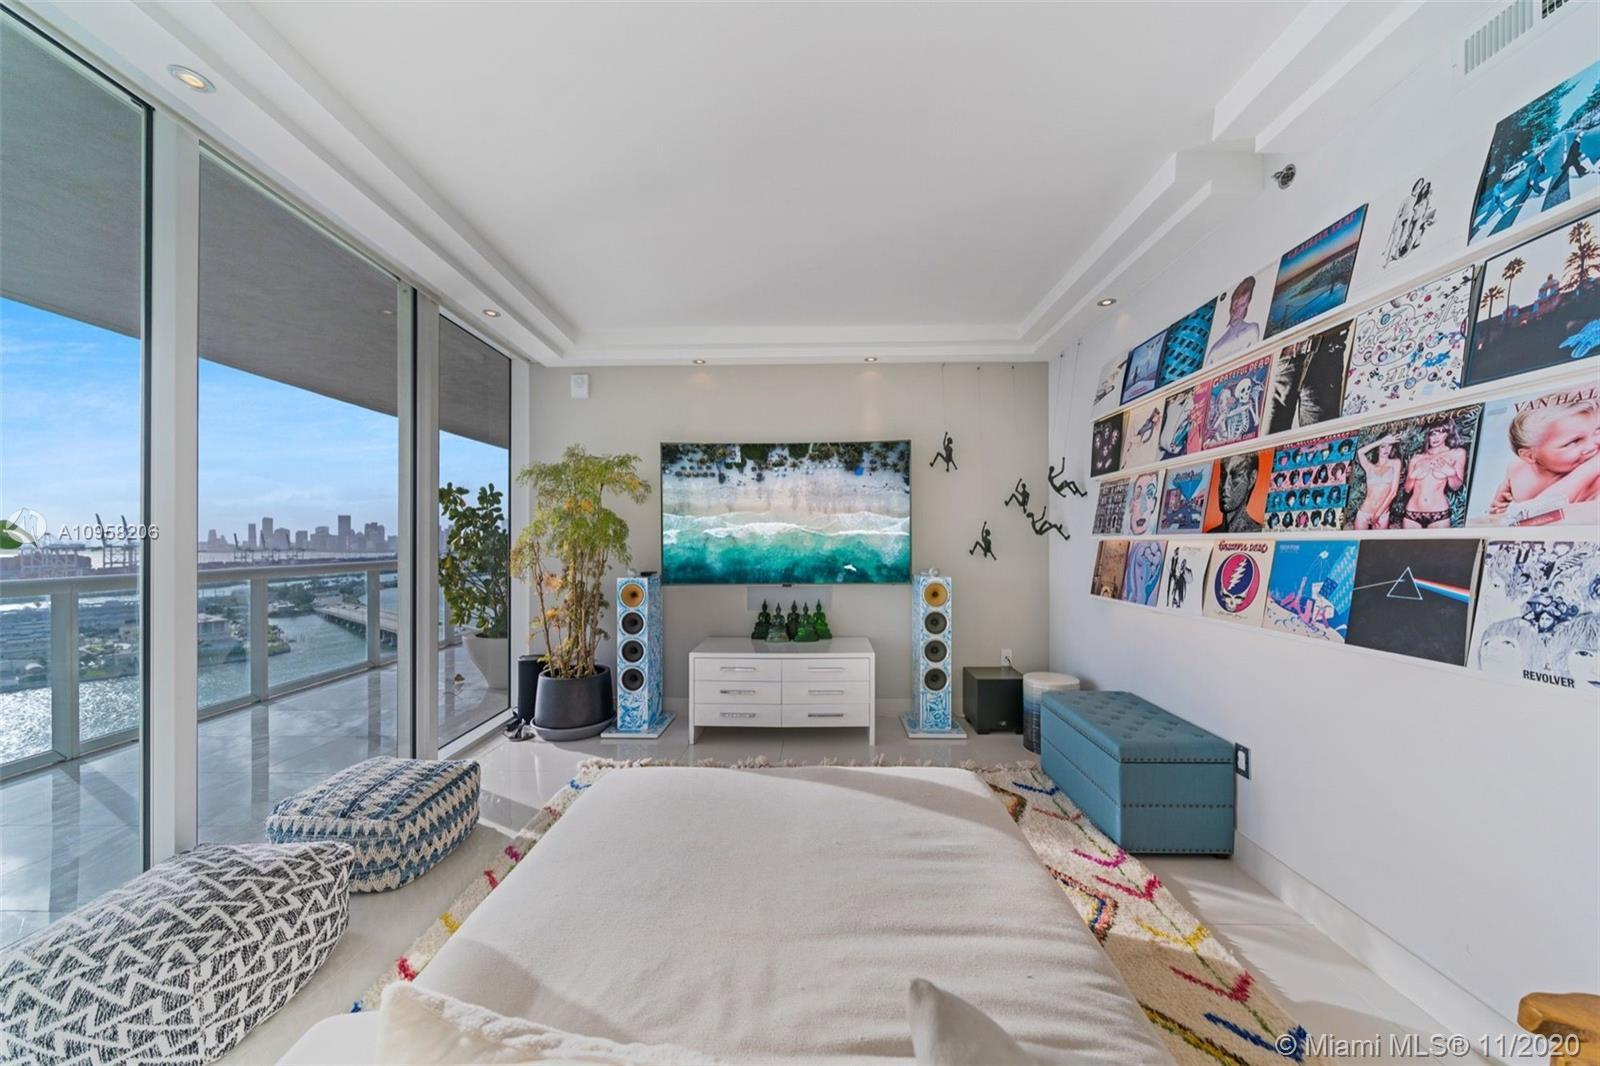 this unit is very special it has been opened up to allow for the expansive views of downtown miami